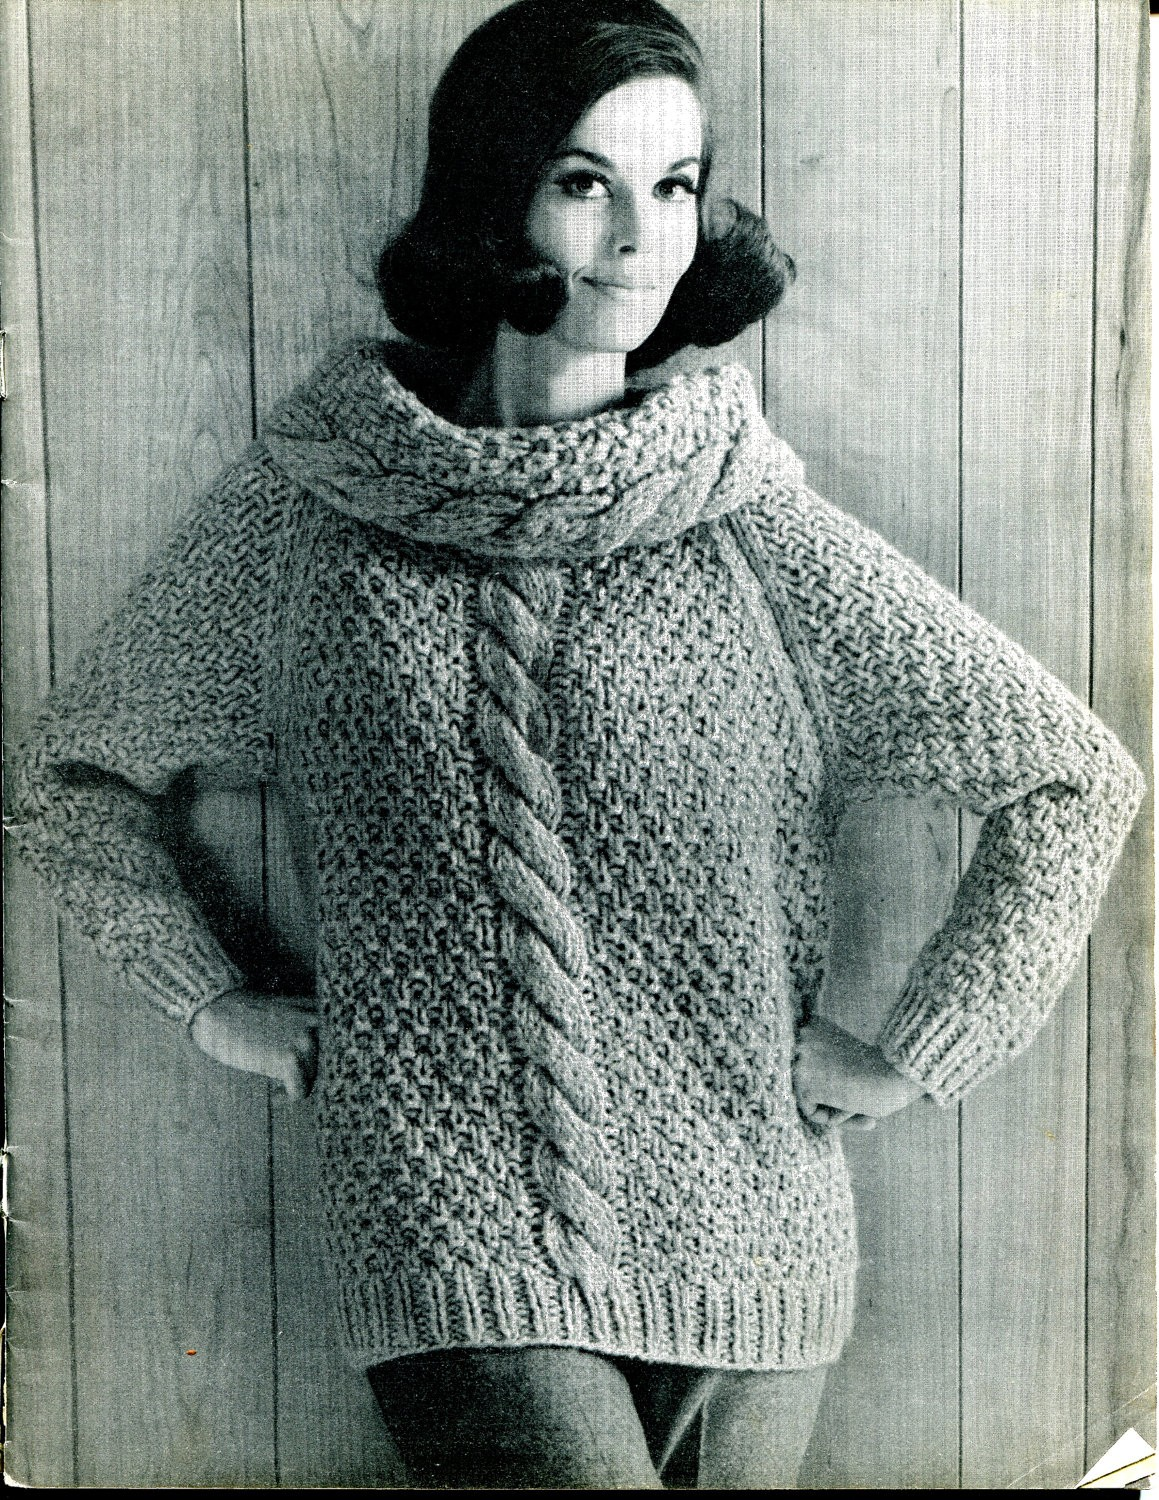 Knitting Sweater Patterns For Women : Cable Knit Sweater Patterns A Knitting Blog